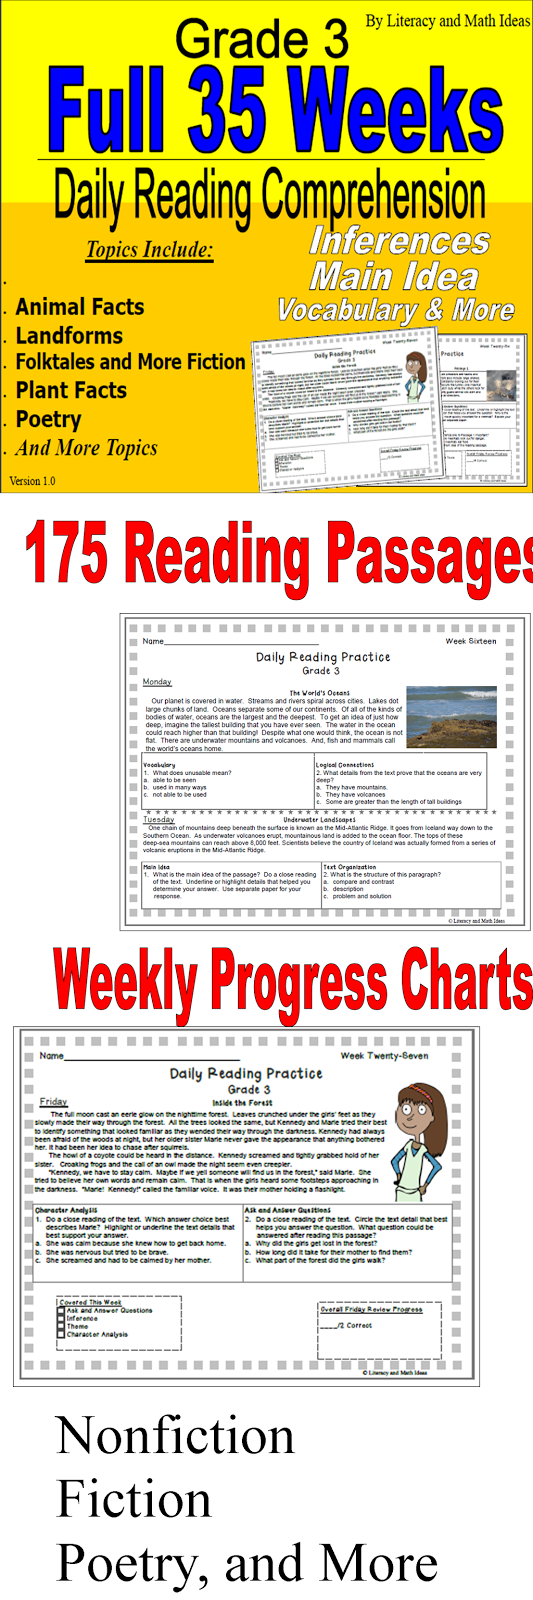 175 Reading Passages Are Included Nonfiction Fiction Animals Plant Facts History Poetry And More Reading Comprehension Reading Classroom School Reading [ 1600 x 533 Pixel ]